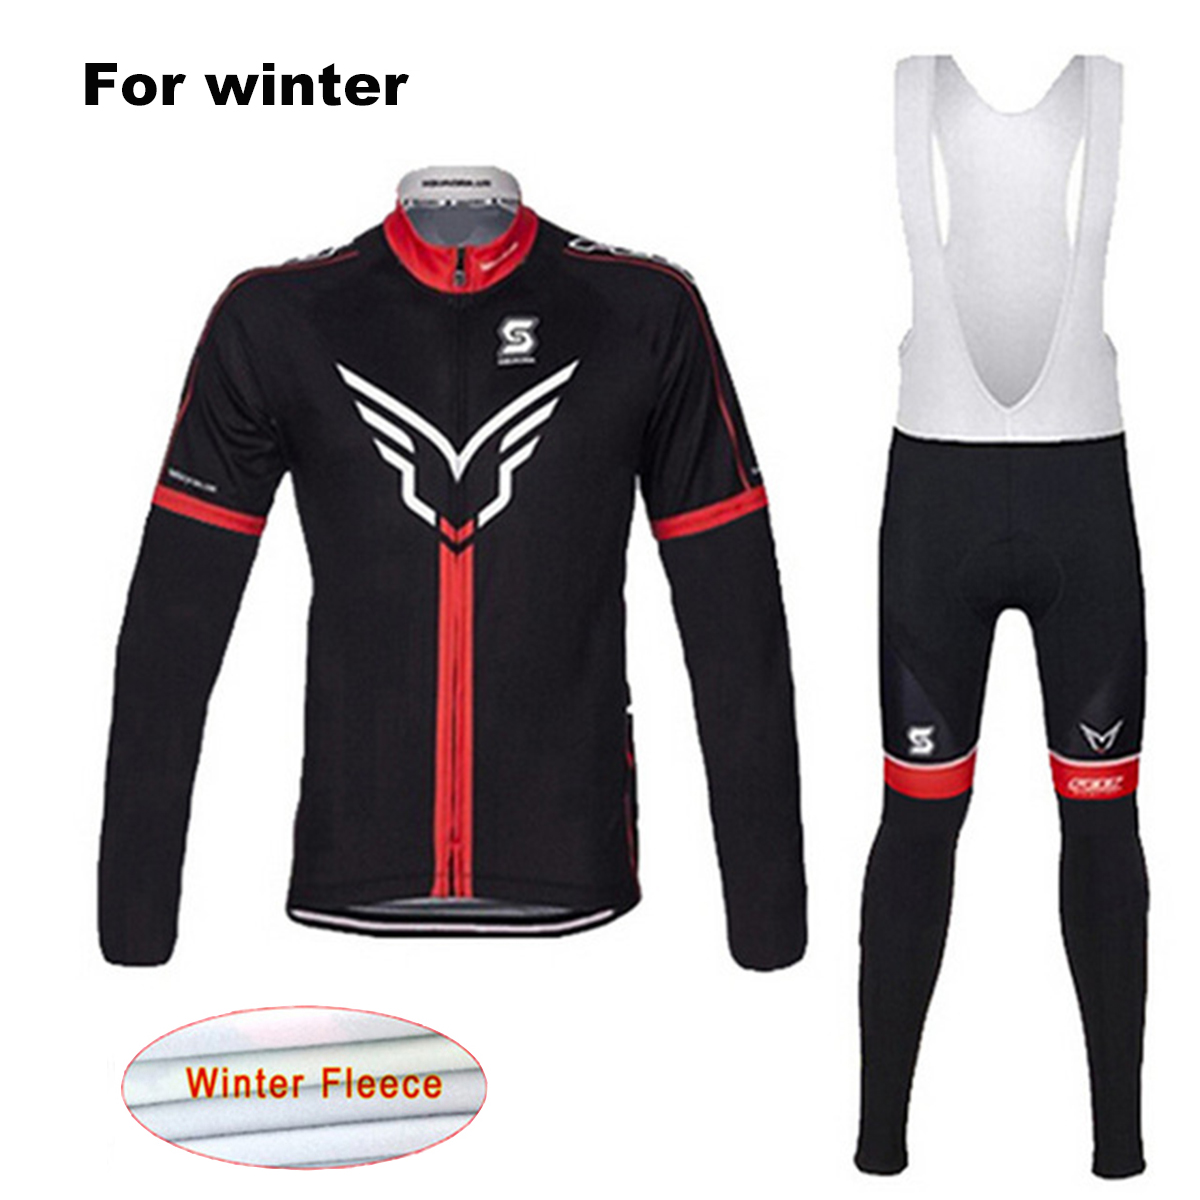 FELT Winter Thermal Fleece Team Cycling Jersey Set Long Sleeves MTB Bike Clothes Ropa Ciclismo Invierno Maillot Bicycle Clothing x tiger winter long cycling jersey set racing bike thermal fleece ropa roupa de ciclismo invierno bicycle clothing cycling set